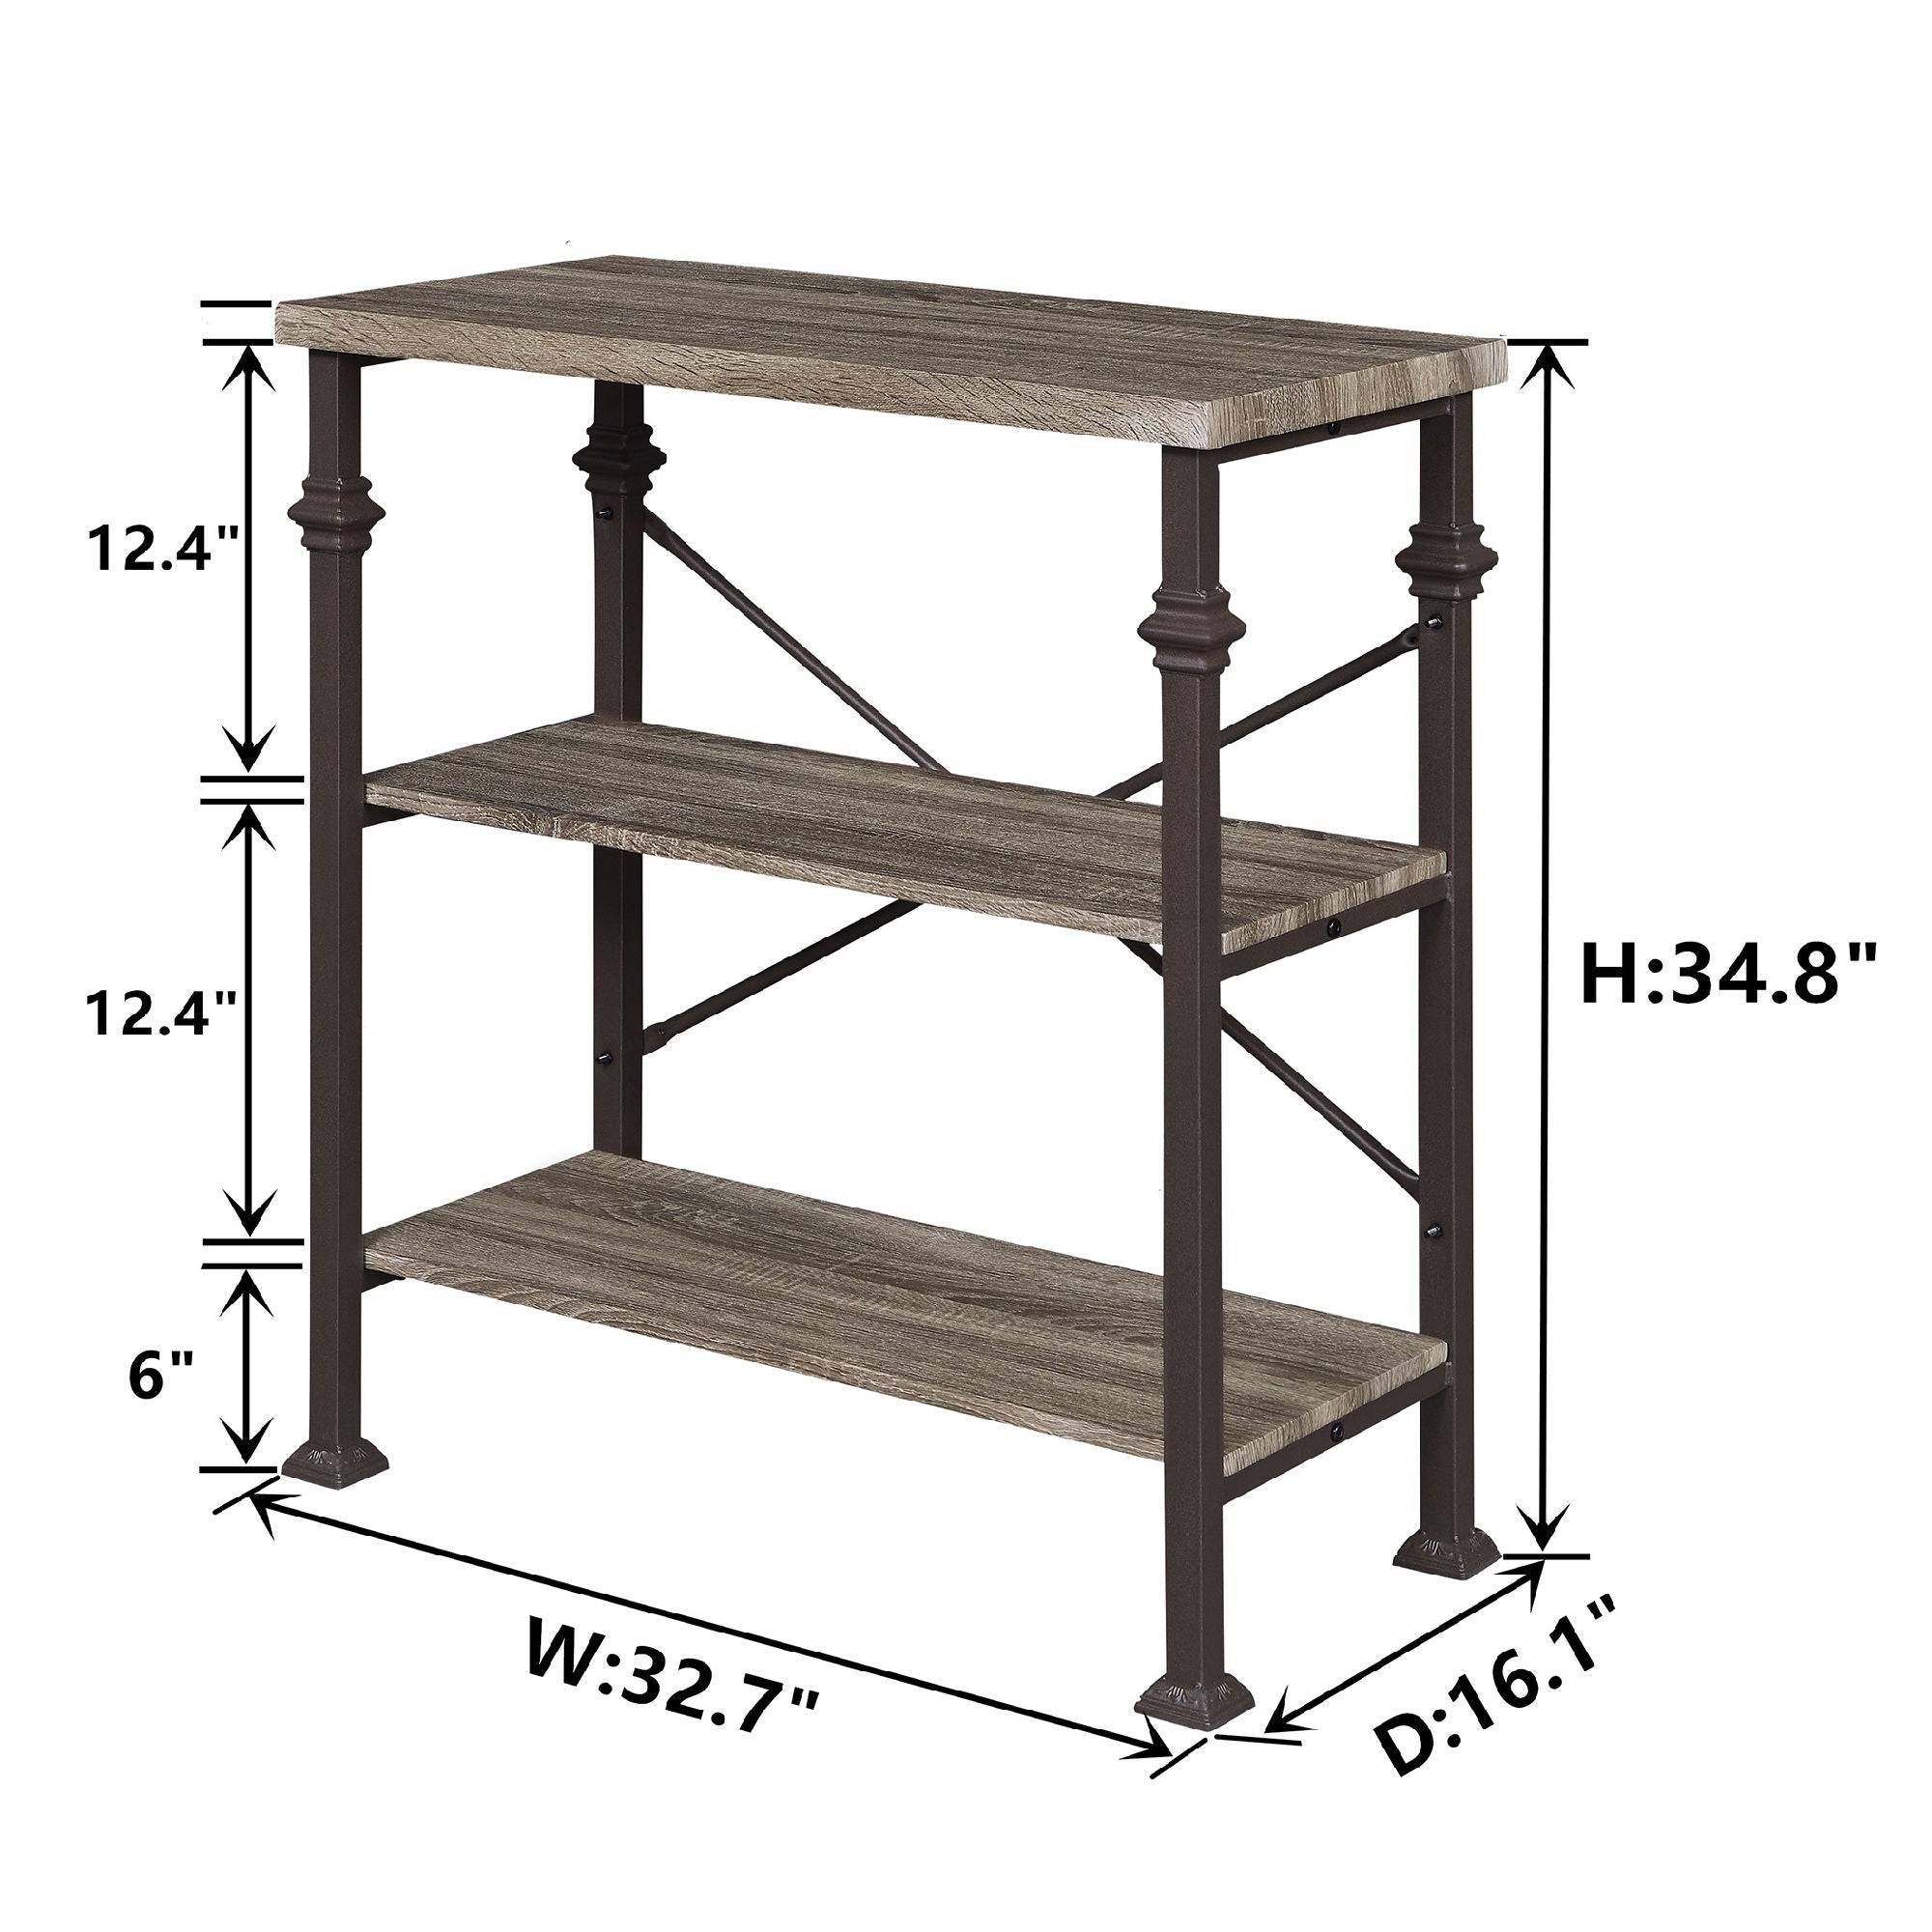 Free shipping 3-Tier Bookshelf, Rustic Industrial Style Bookcase Furniture, Free Standing Storage Shelves for Living Room Bedroom and Kitchen, Grey Oak